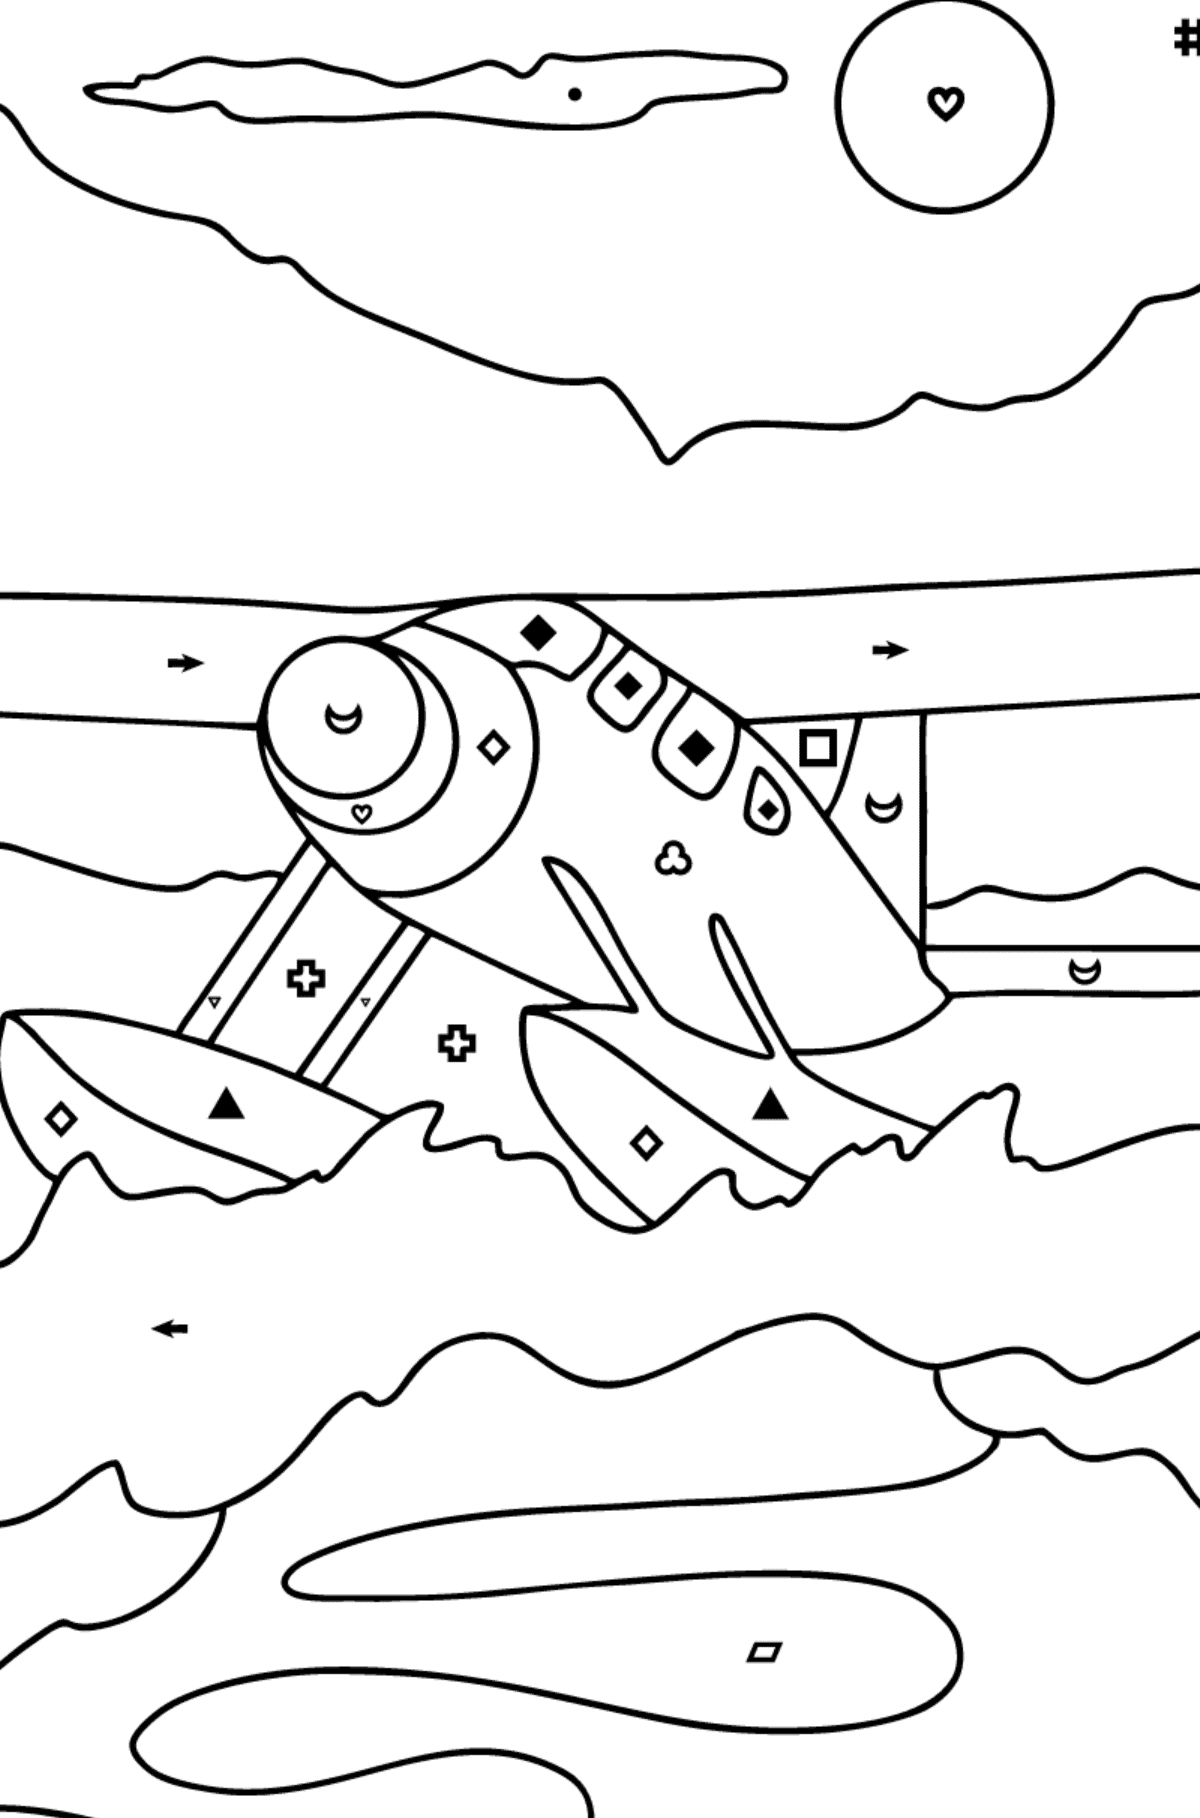 Coloring Page - A Hydroplane - Coloring by Symbols and Geometric Shapes for Kids